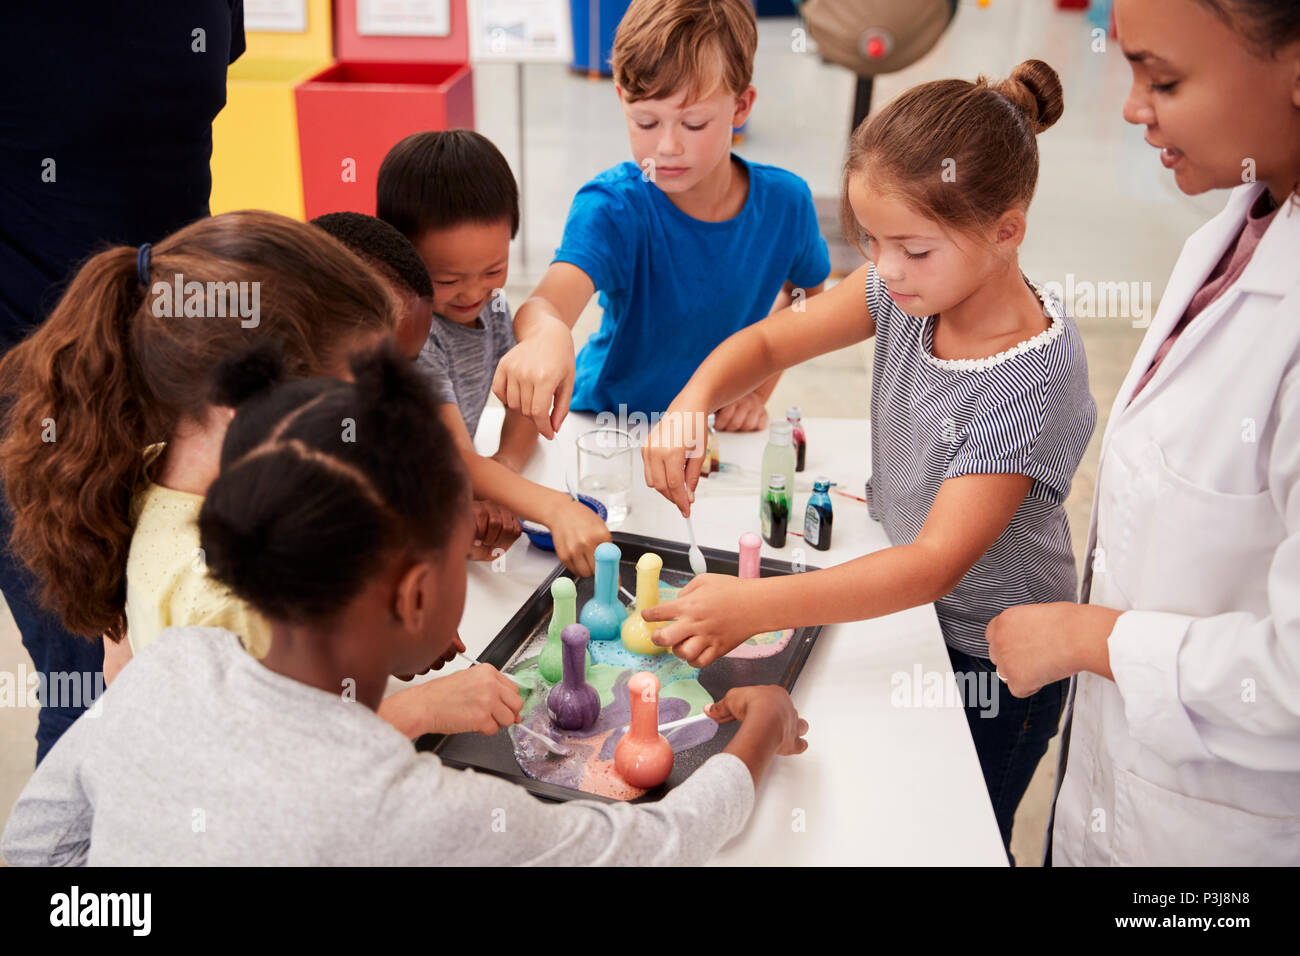 School kids taking part in experiment at science centre - Stock Image